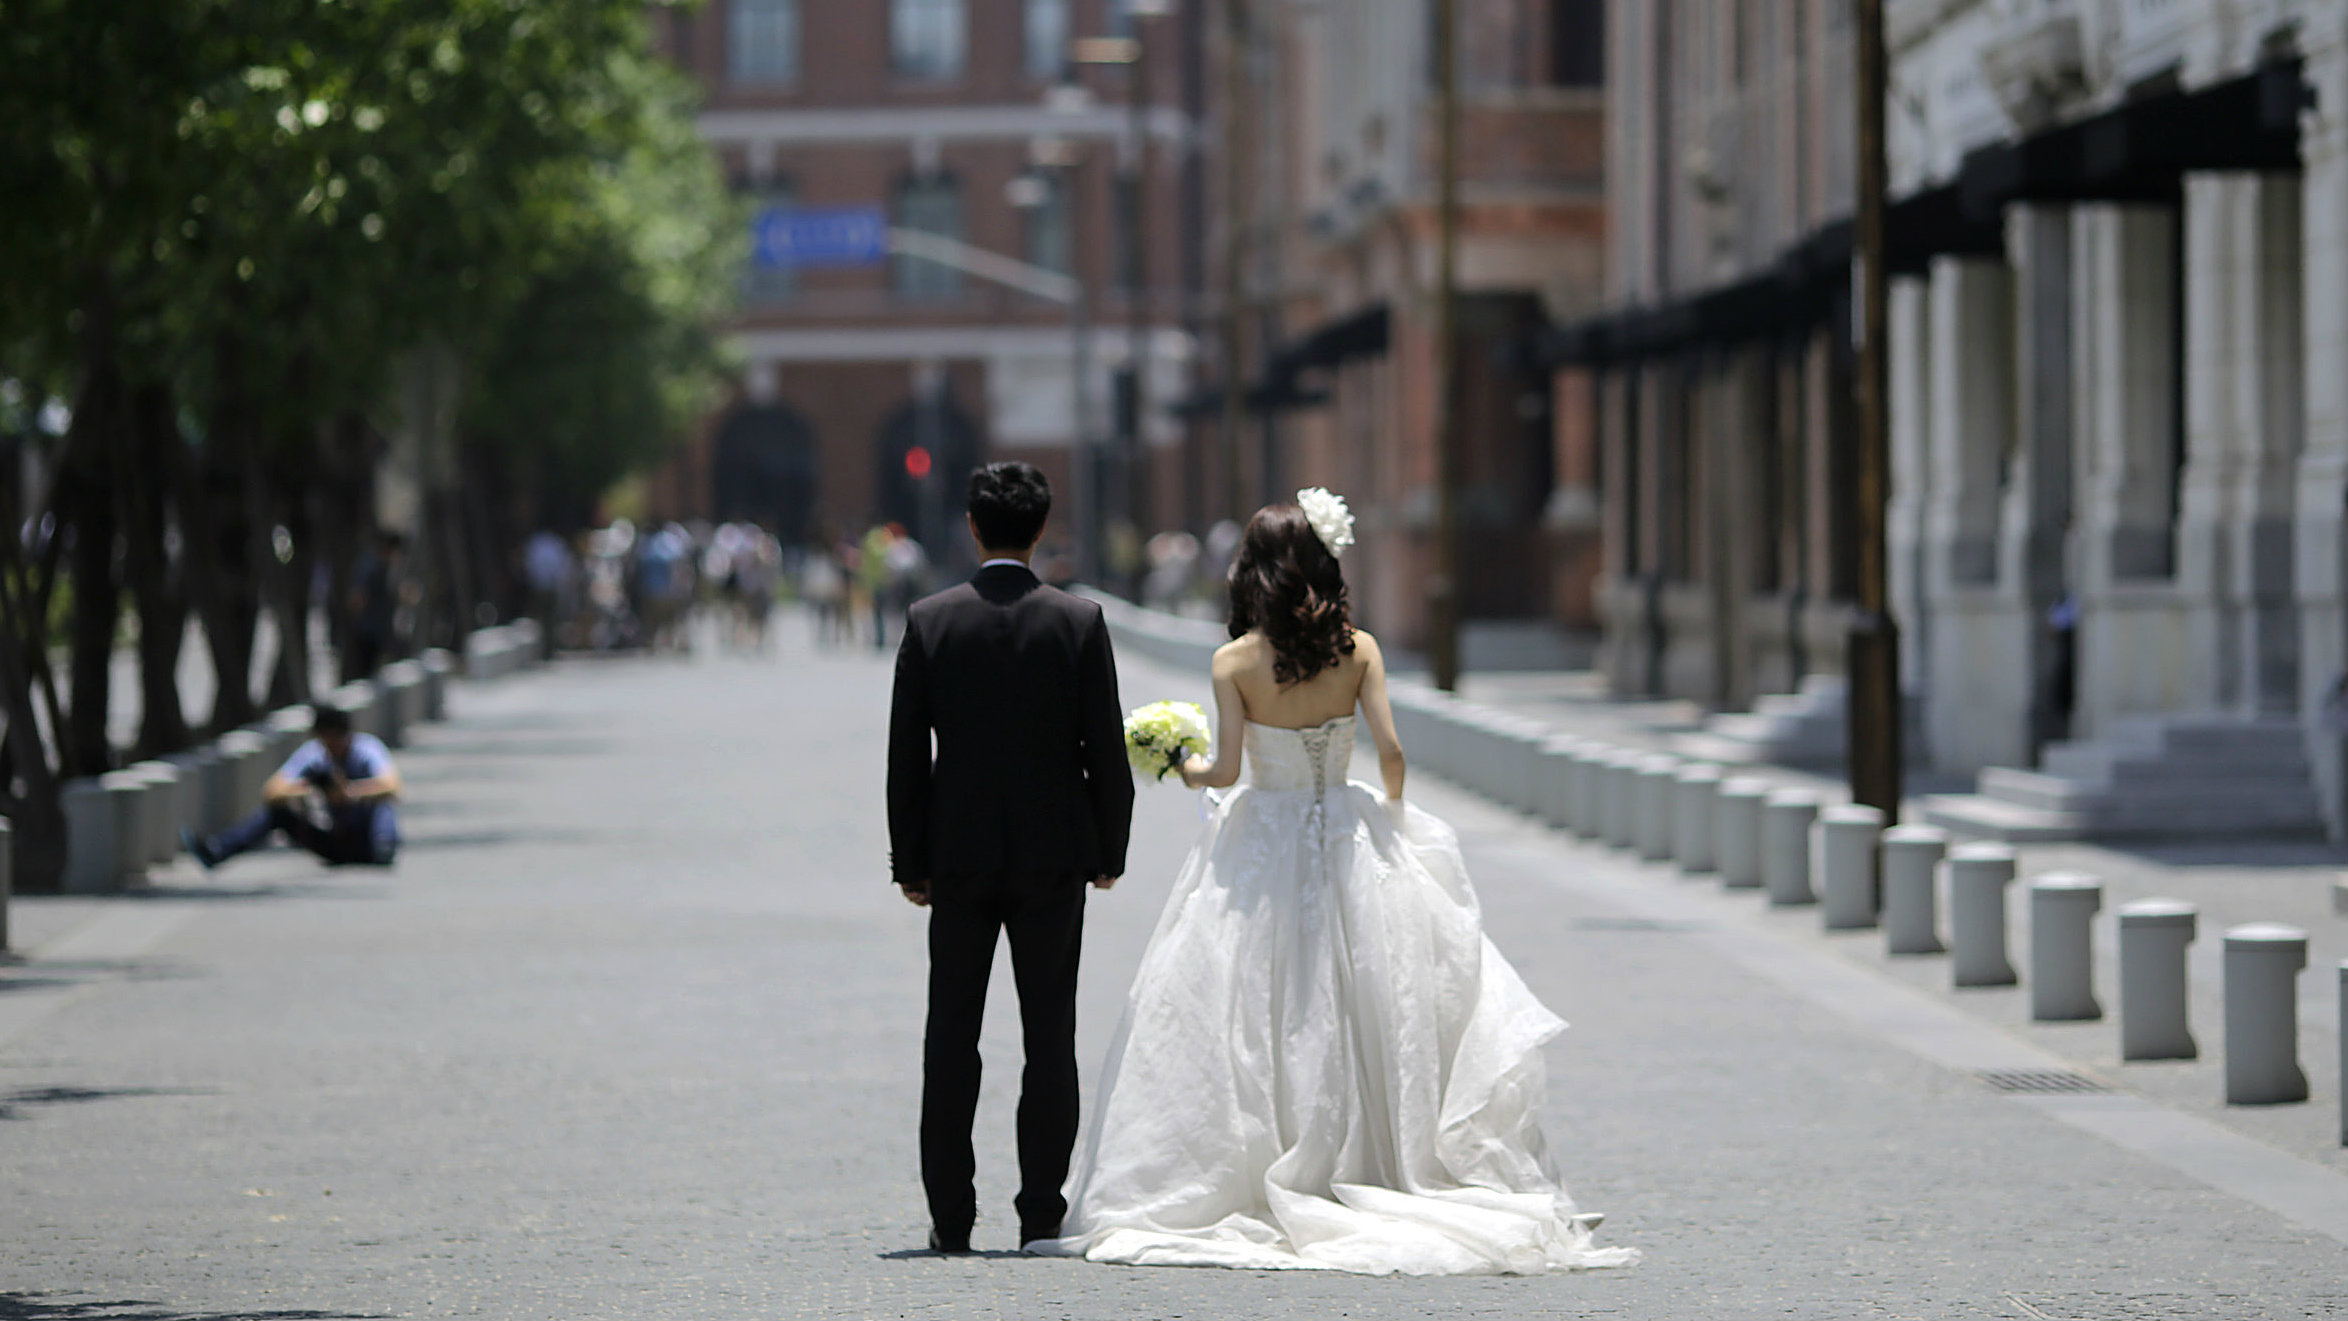 A newlywed couple waits for a wedding photo session